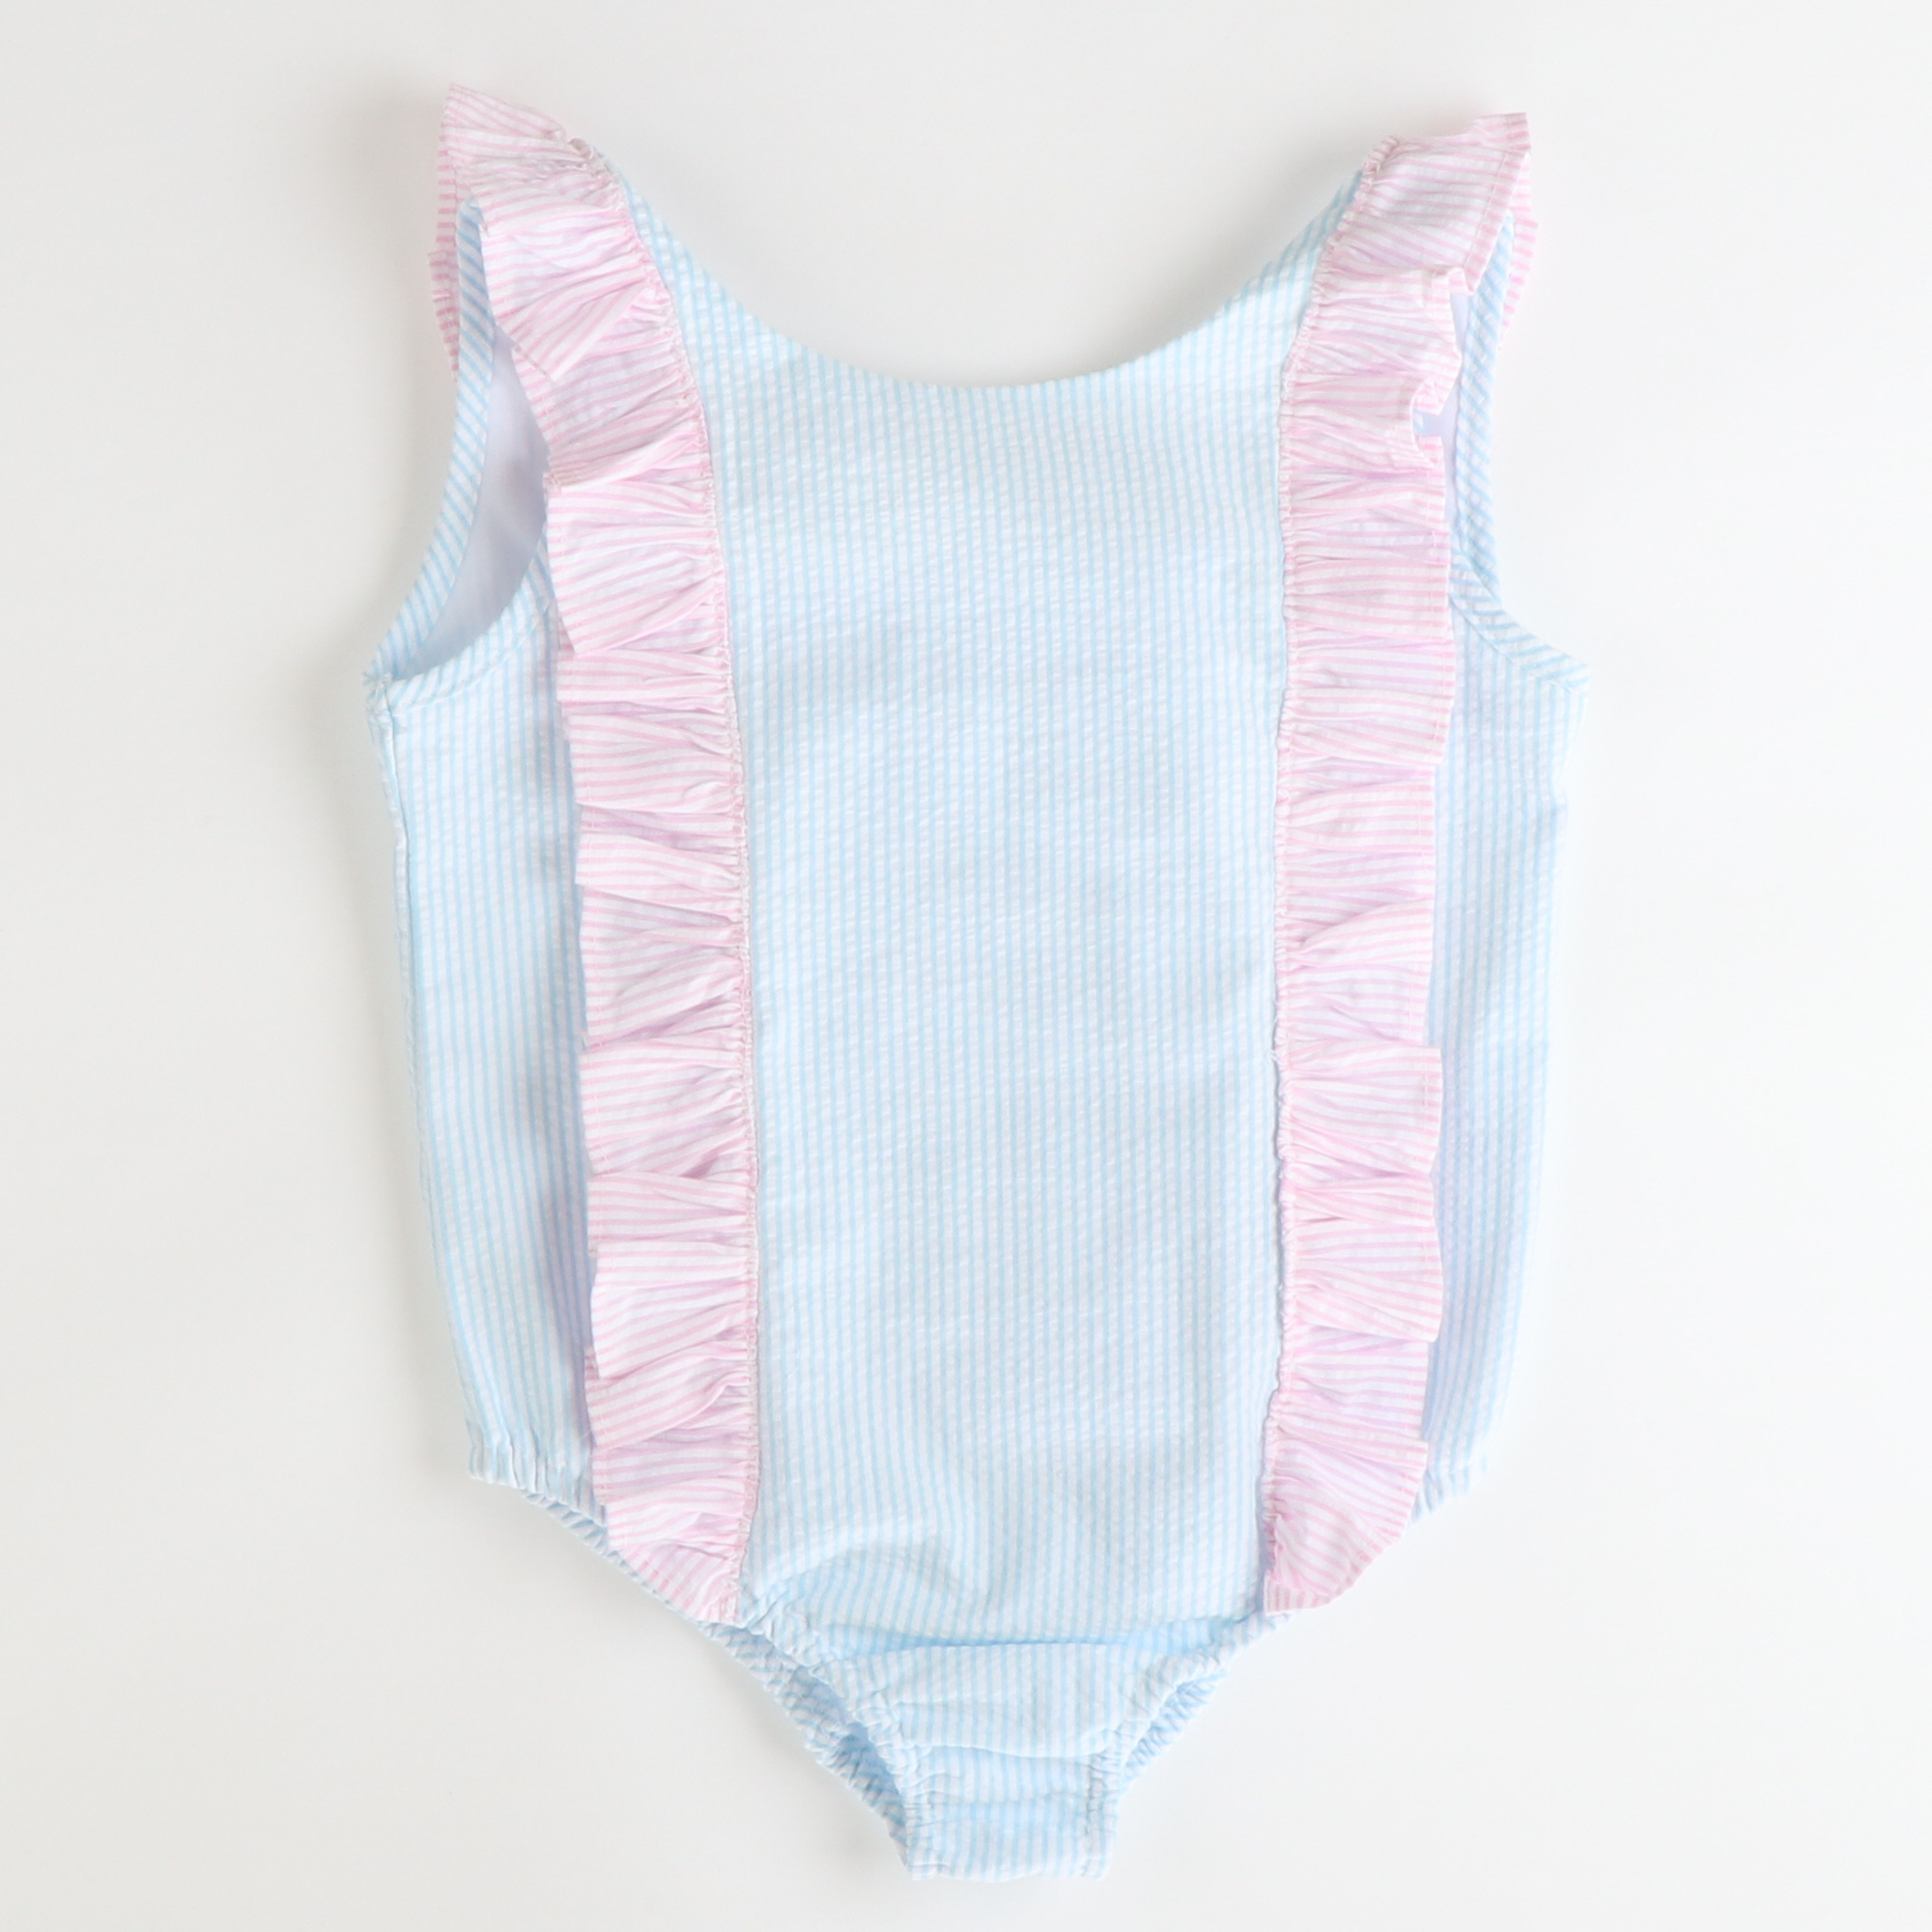 Ruffle Swimsuit - Sky Stripe Seersucker